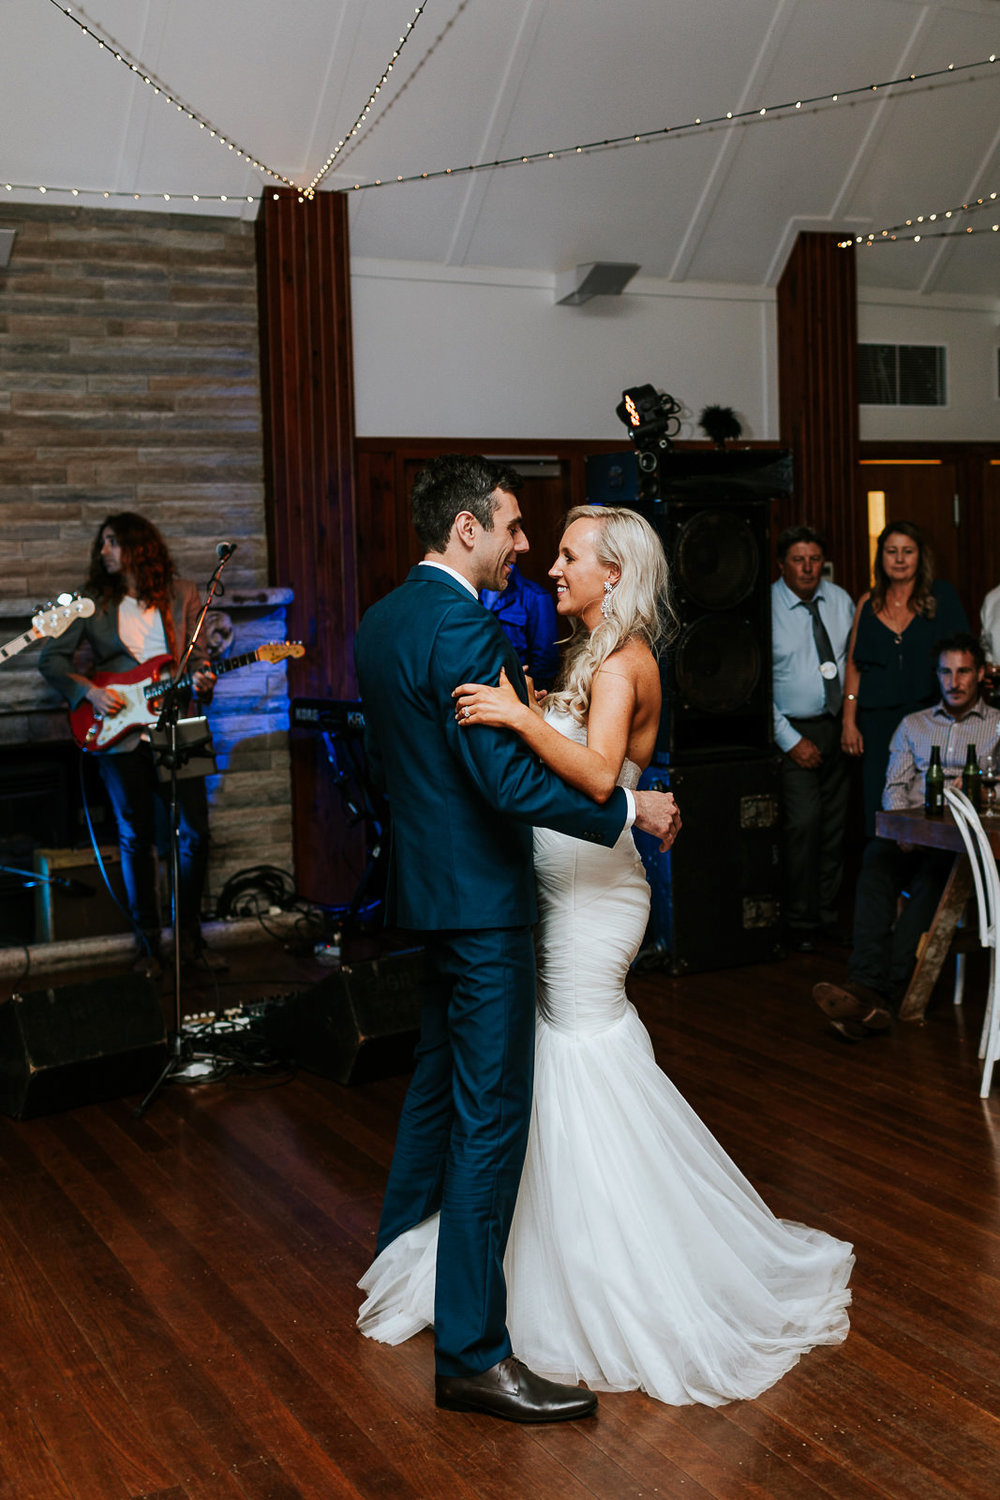 20171007 - Audley+Dance+Hall+Carlie+Simon_527.jpg